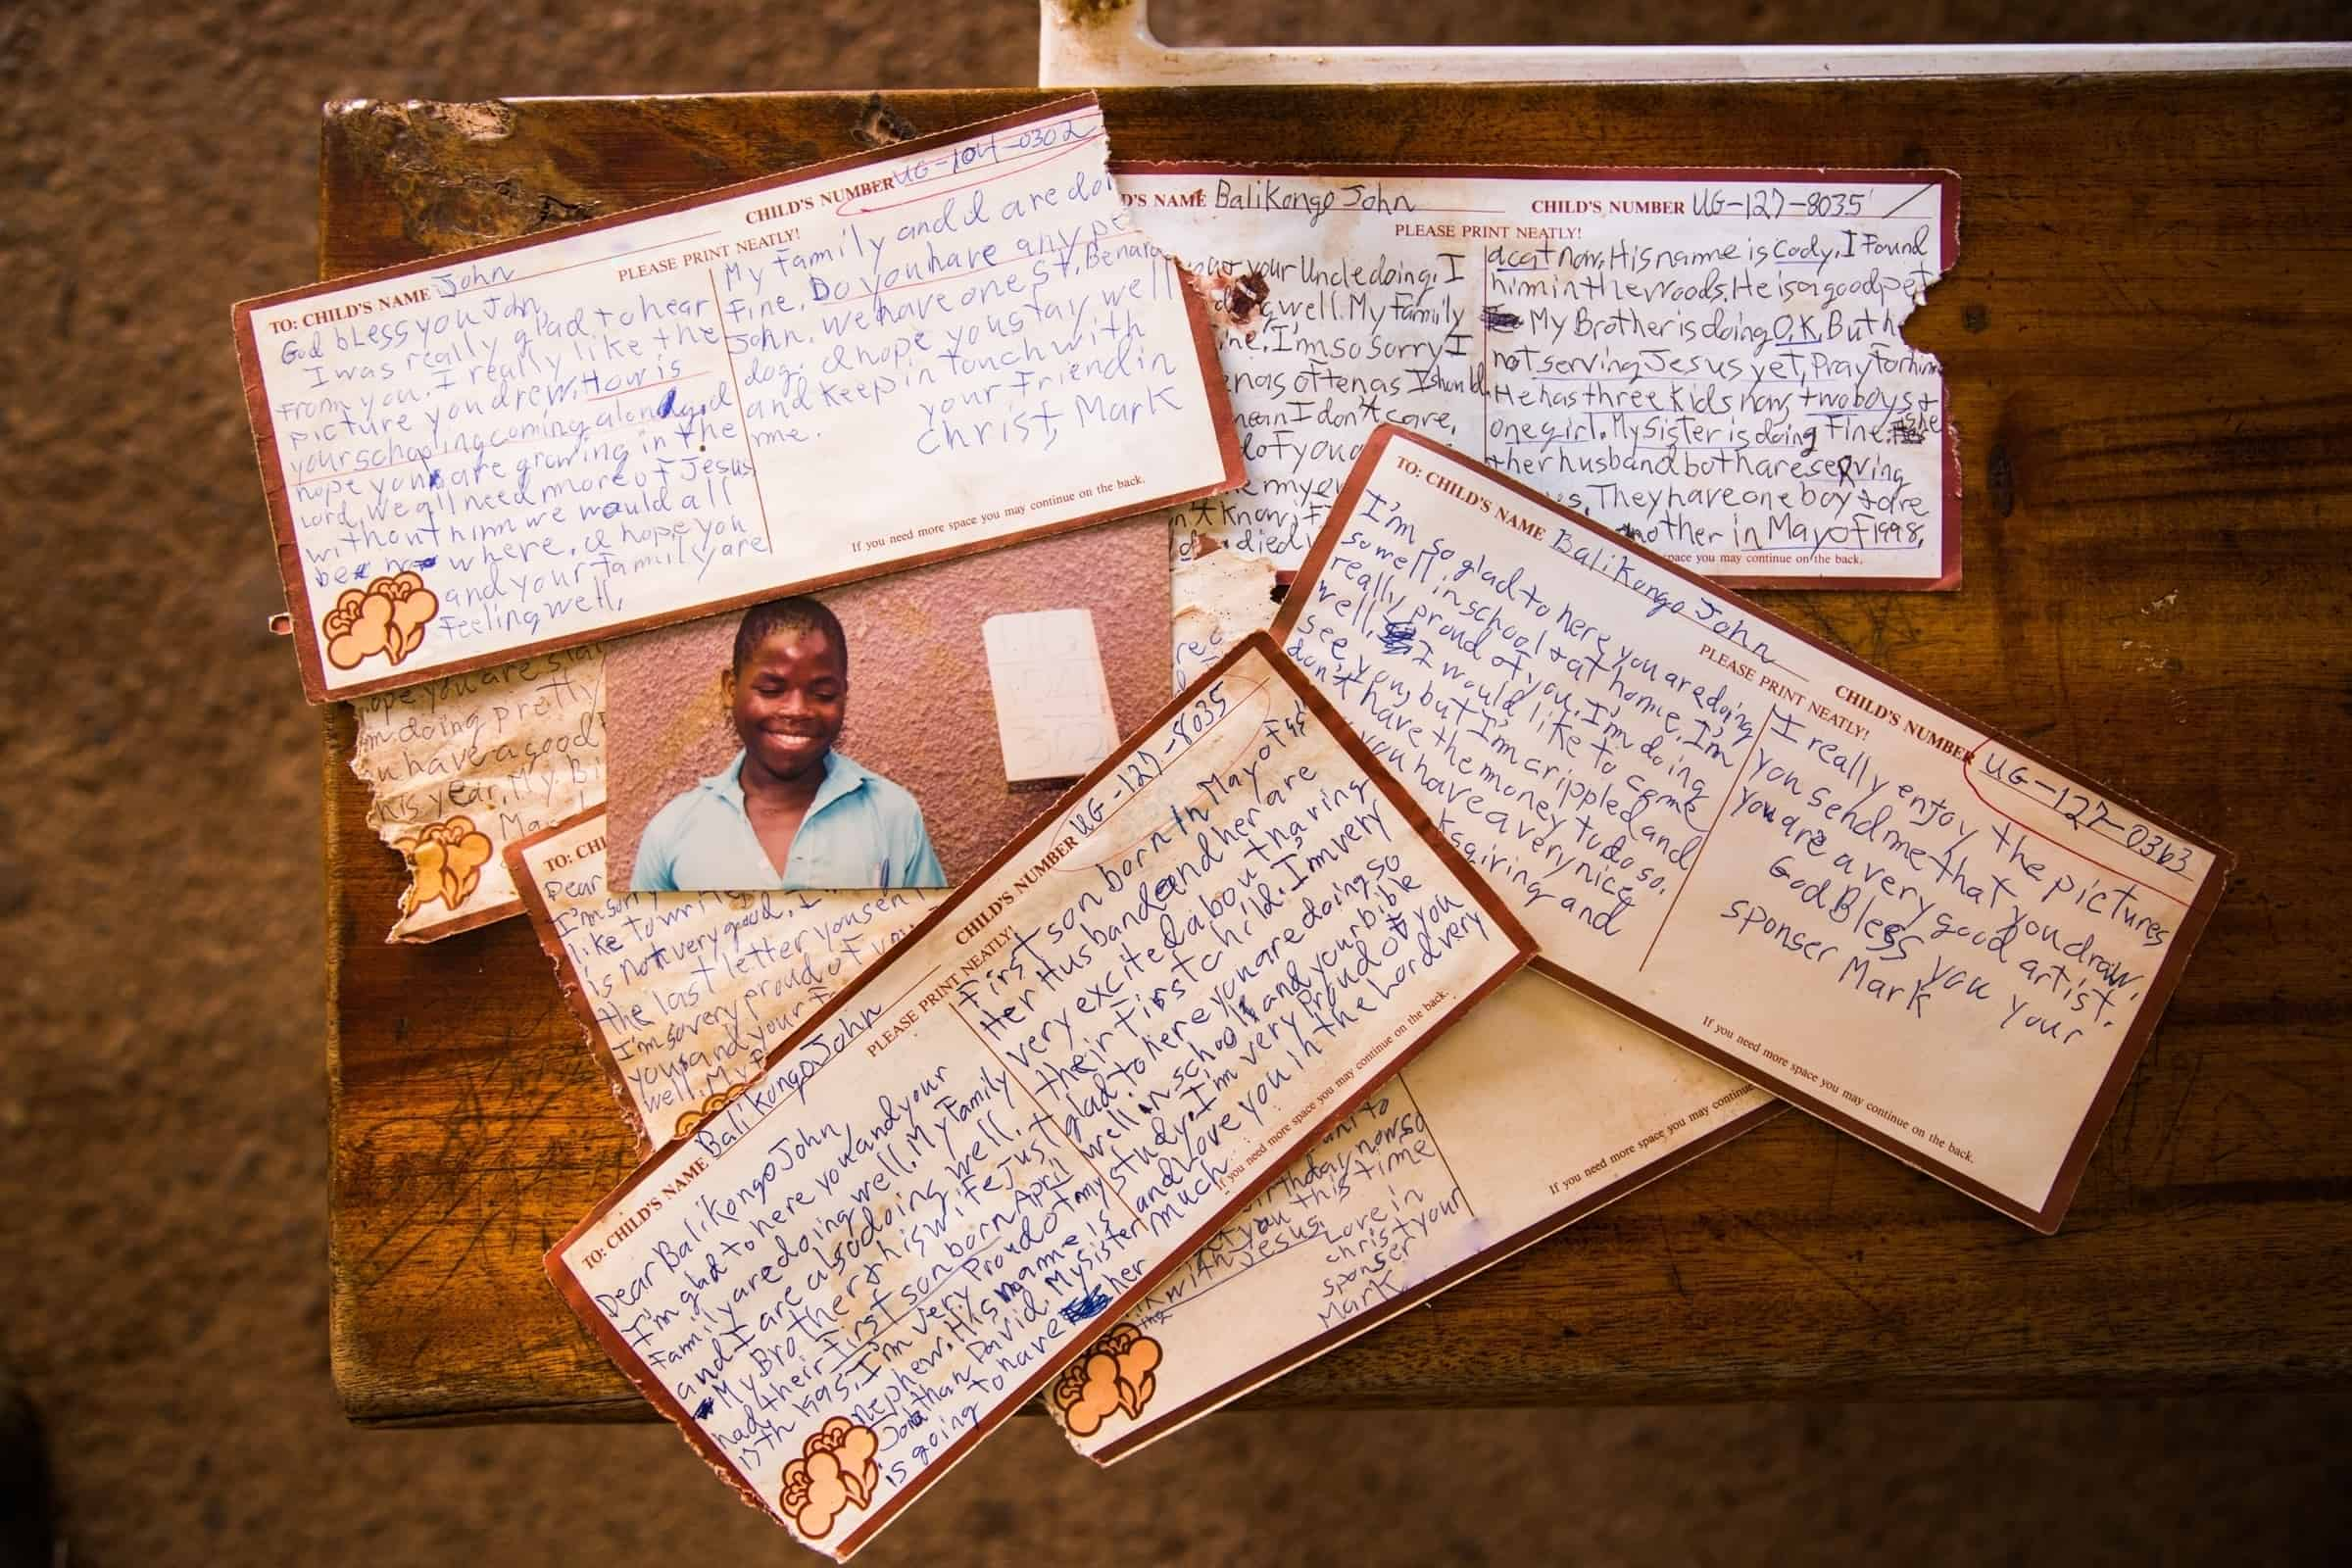 Do My Letters to the Child I Sponsor Actually Matter